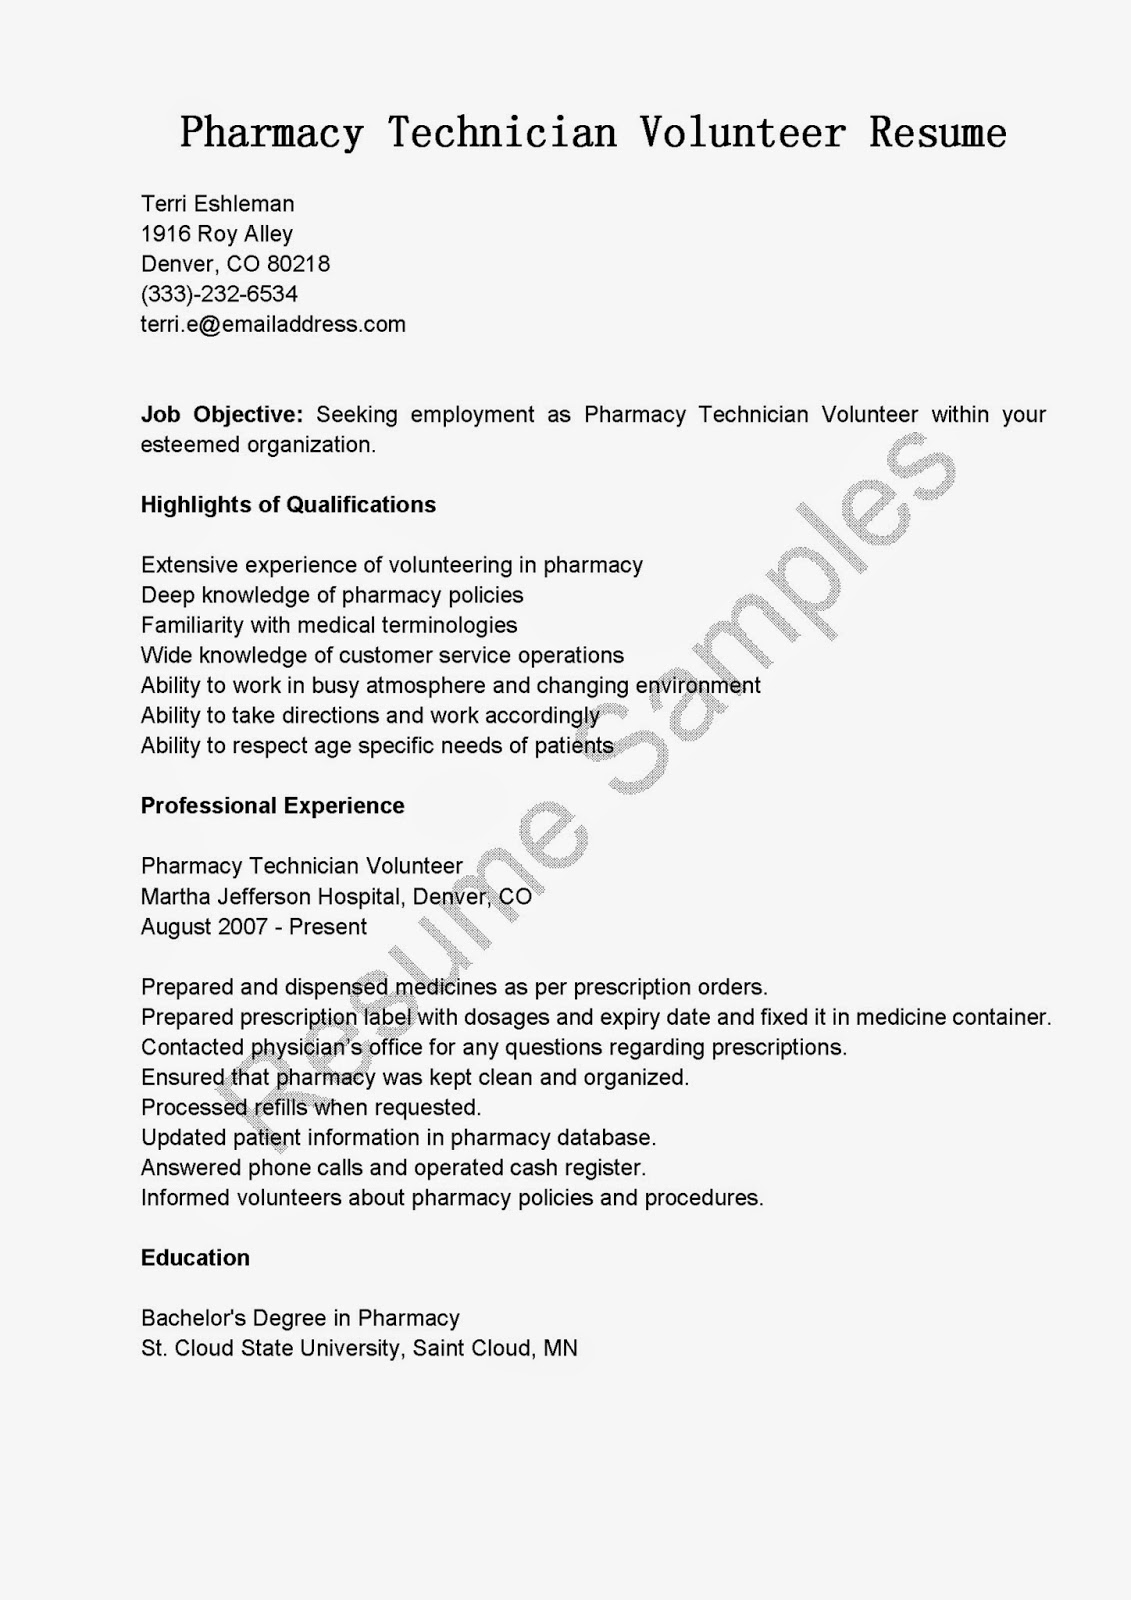 Resume Samples Pharmacy Technician Volunteer Sample